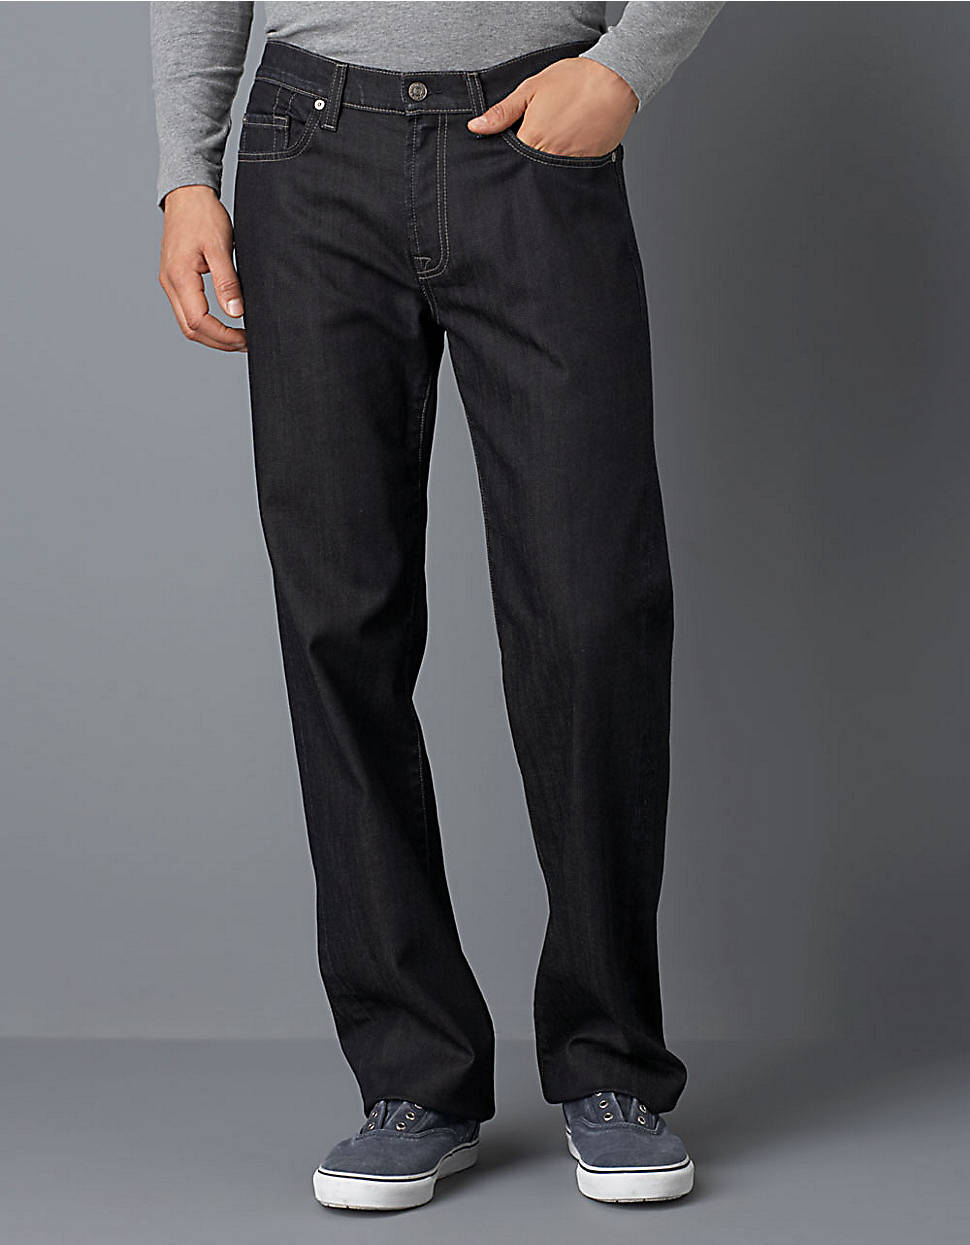 3835d3e89c39 7 For All Mankind Chester Row Wash Jeans in Blue for Men - Lyst